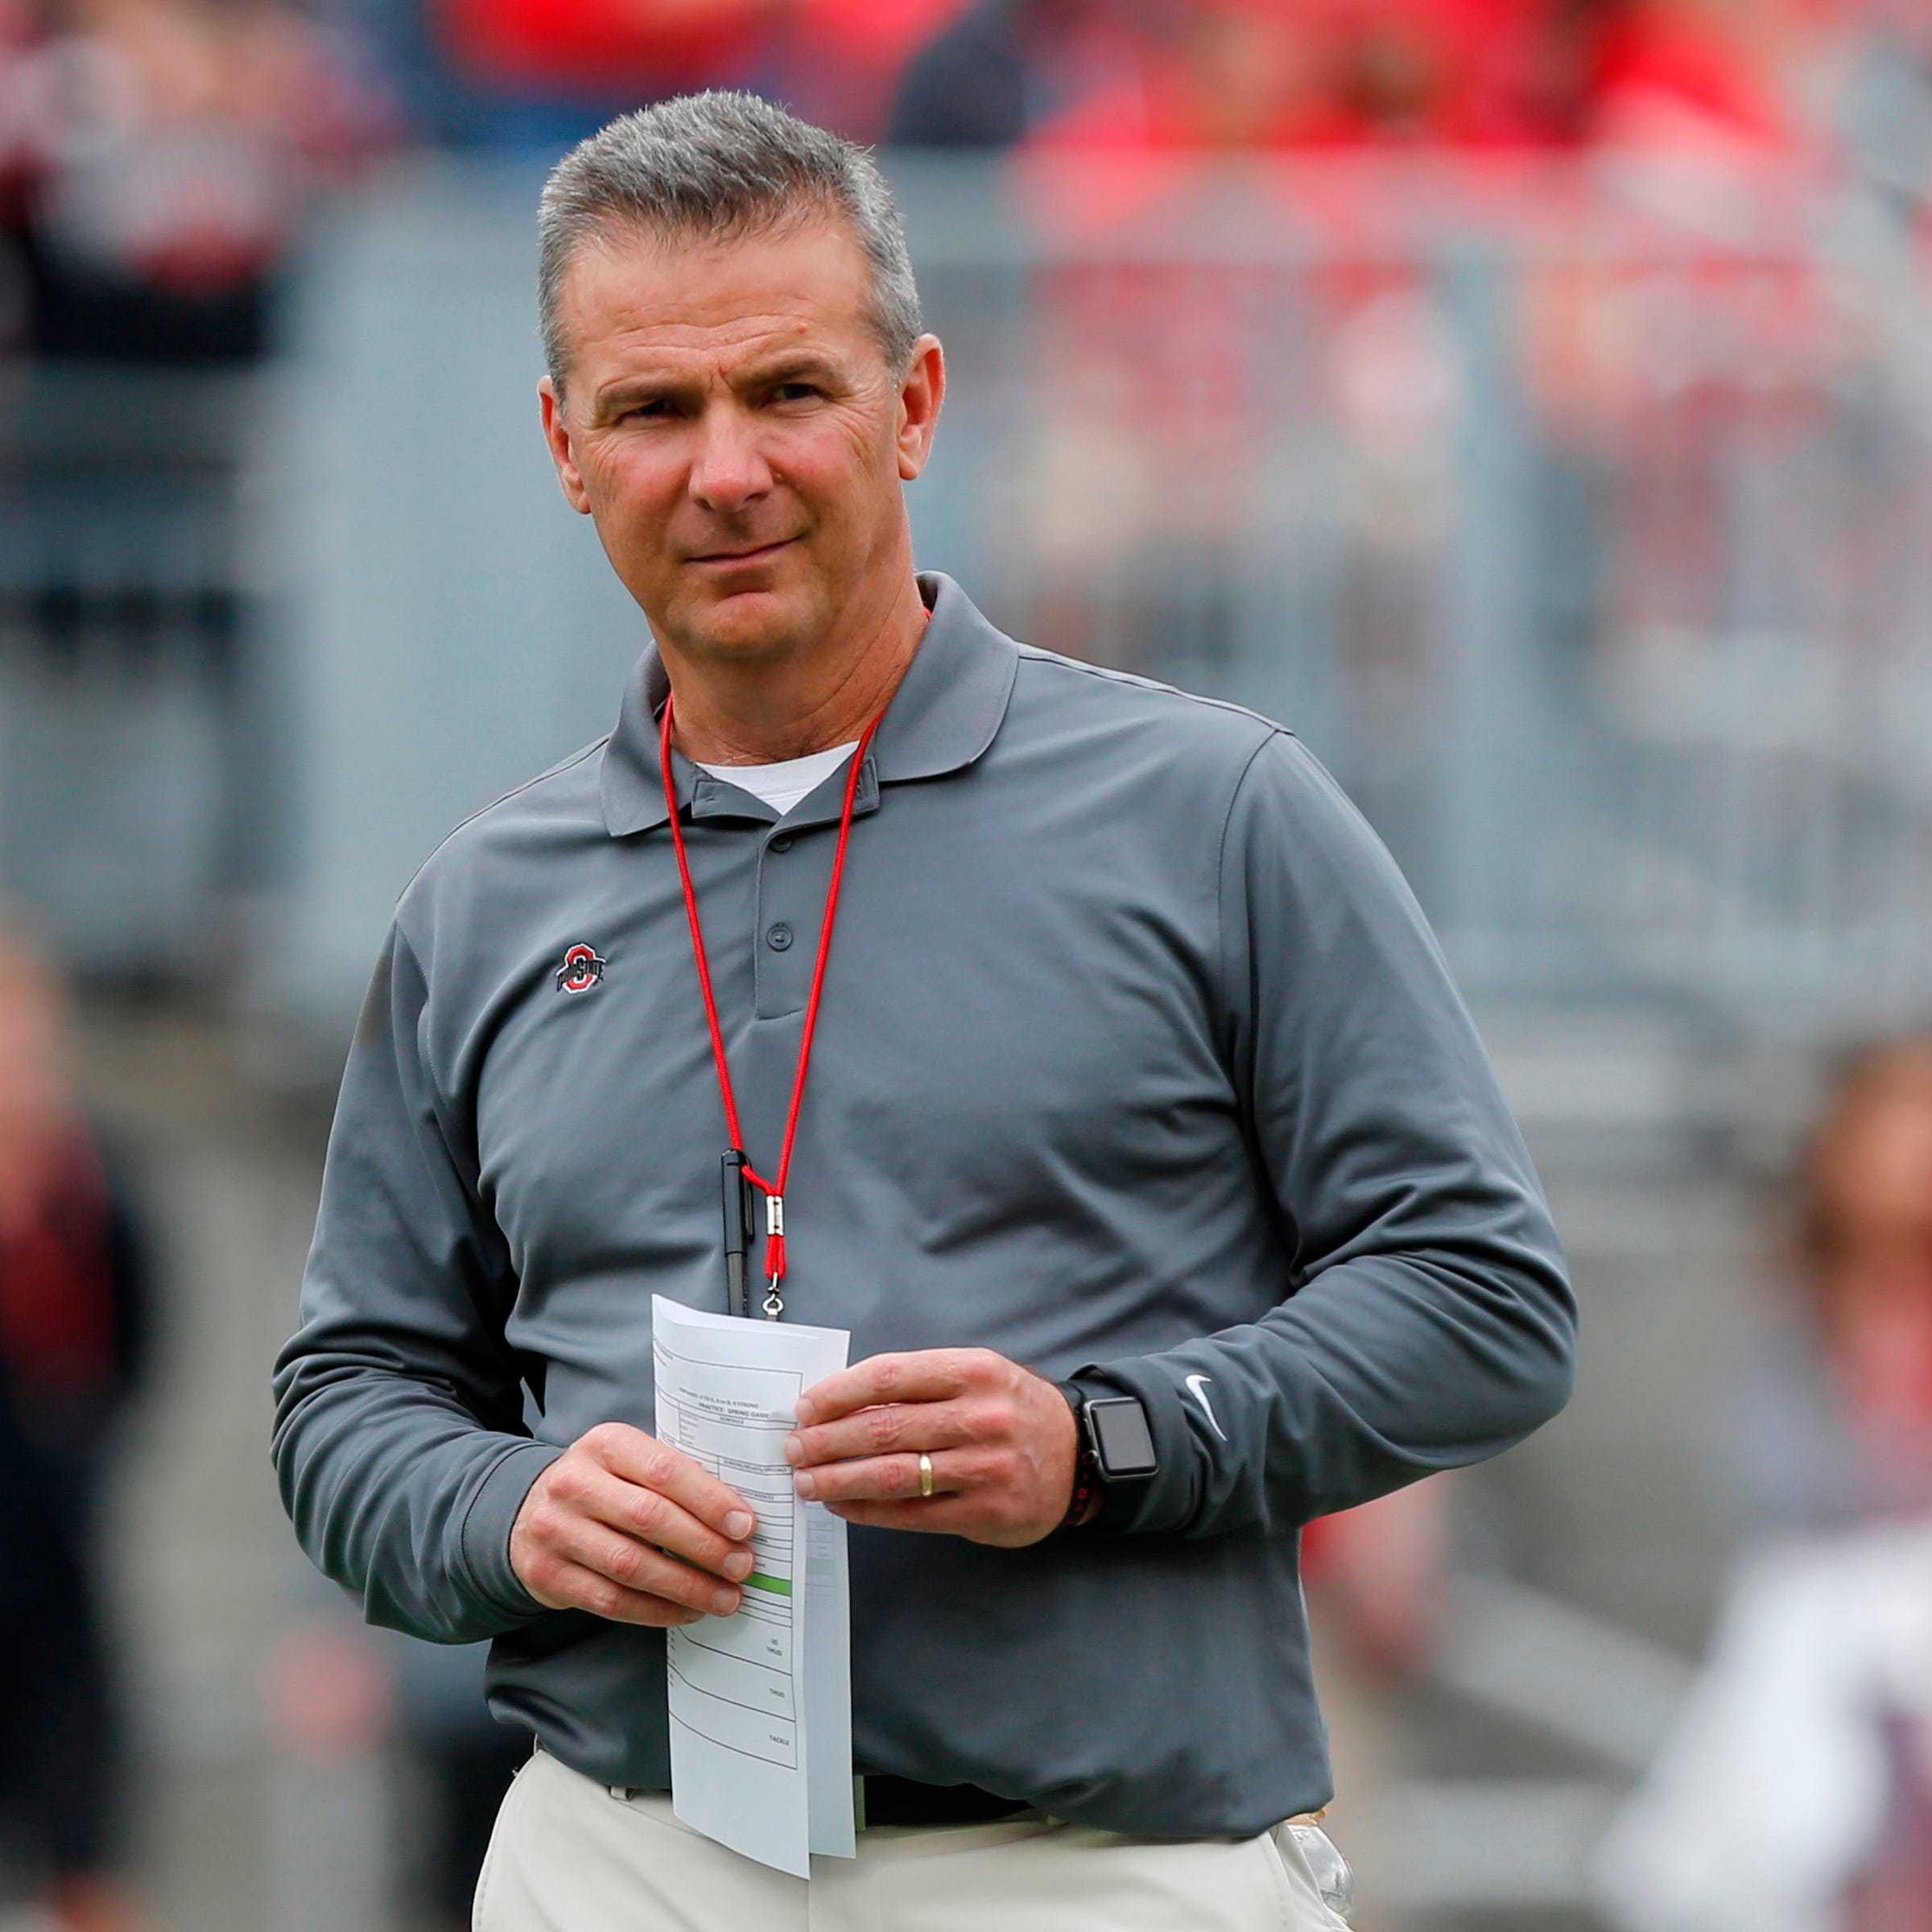 Urban Meyer probe costs $500K, but still about what Ohio State wants